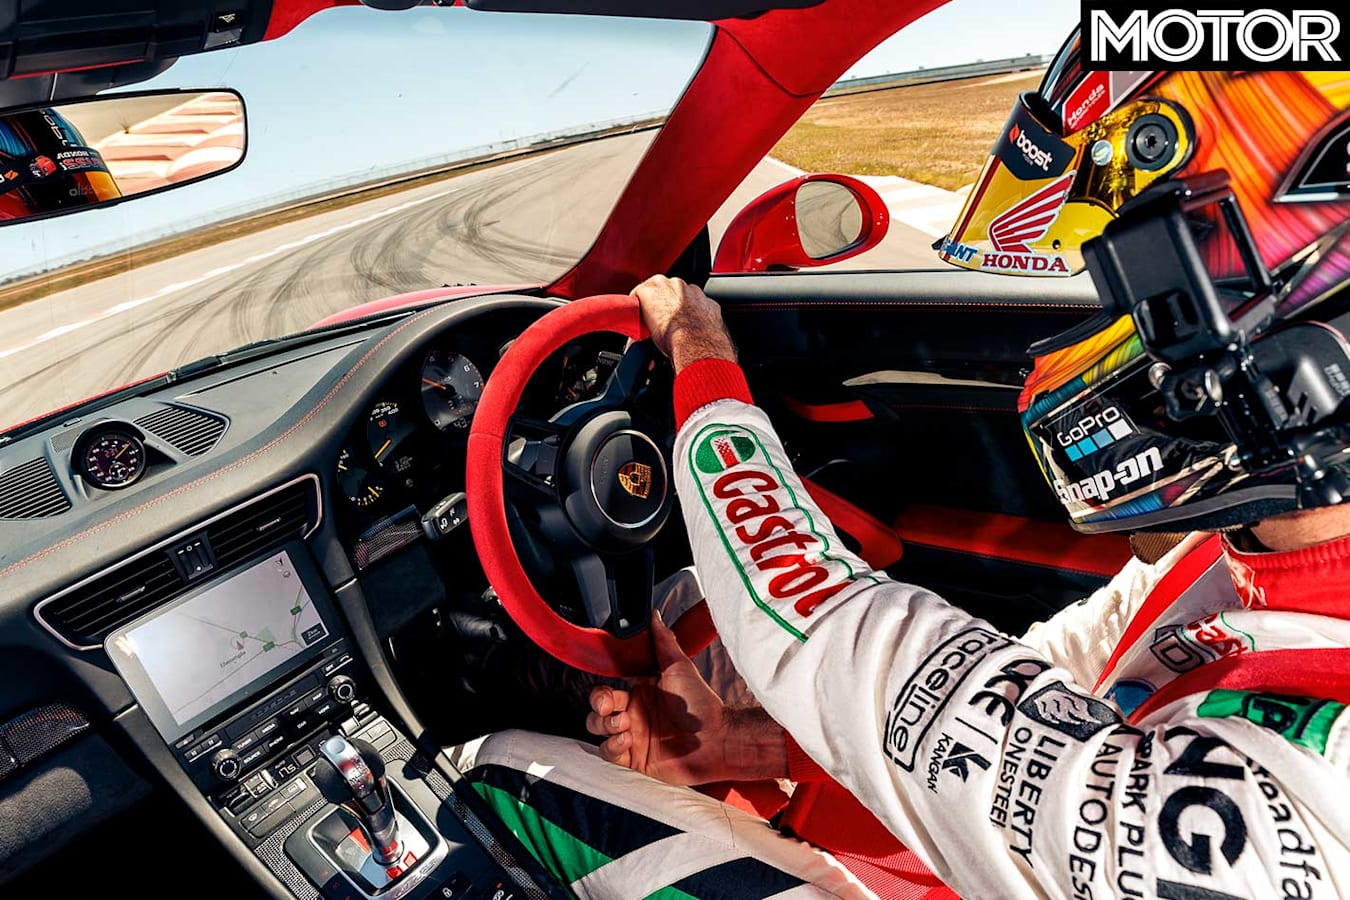 Performance Car Of The Year 2019 Porsche 911 GT 2 RS Rick Kelly Drive Jpg